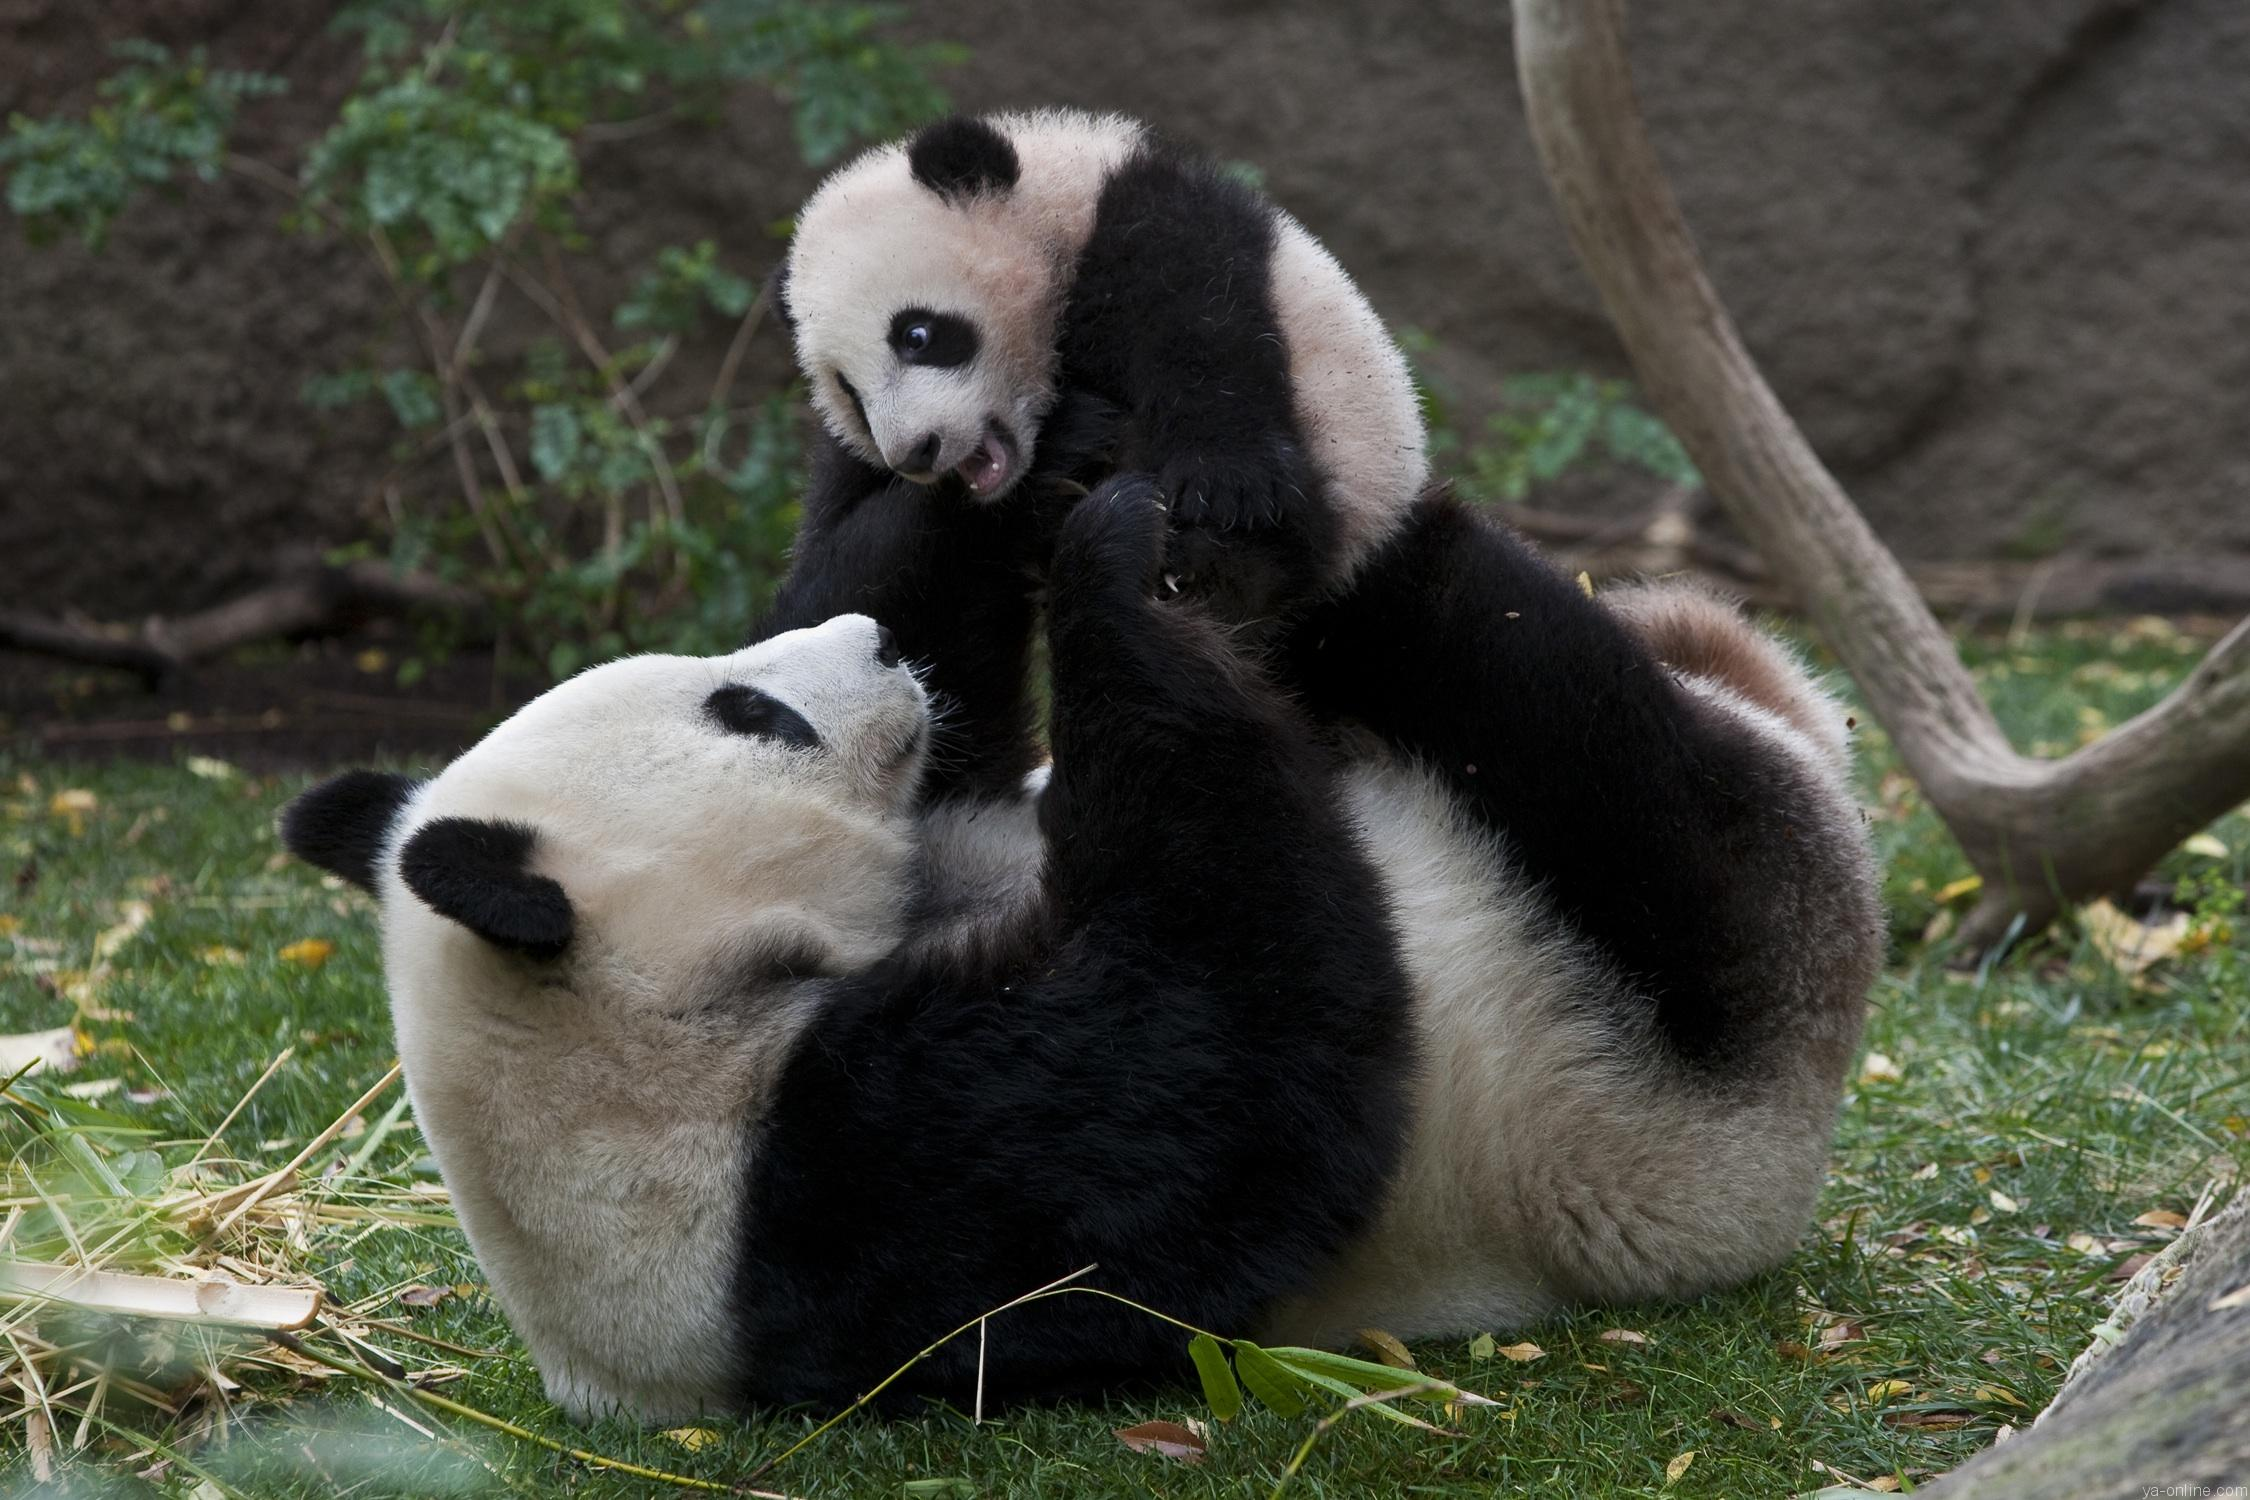 Giant panda mother and cub, Bai Yun and Yun Zi